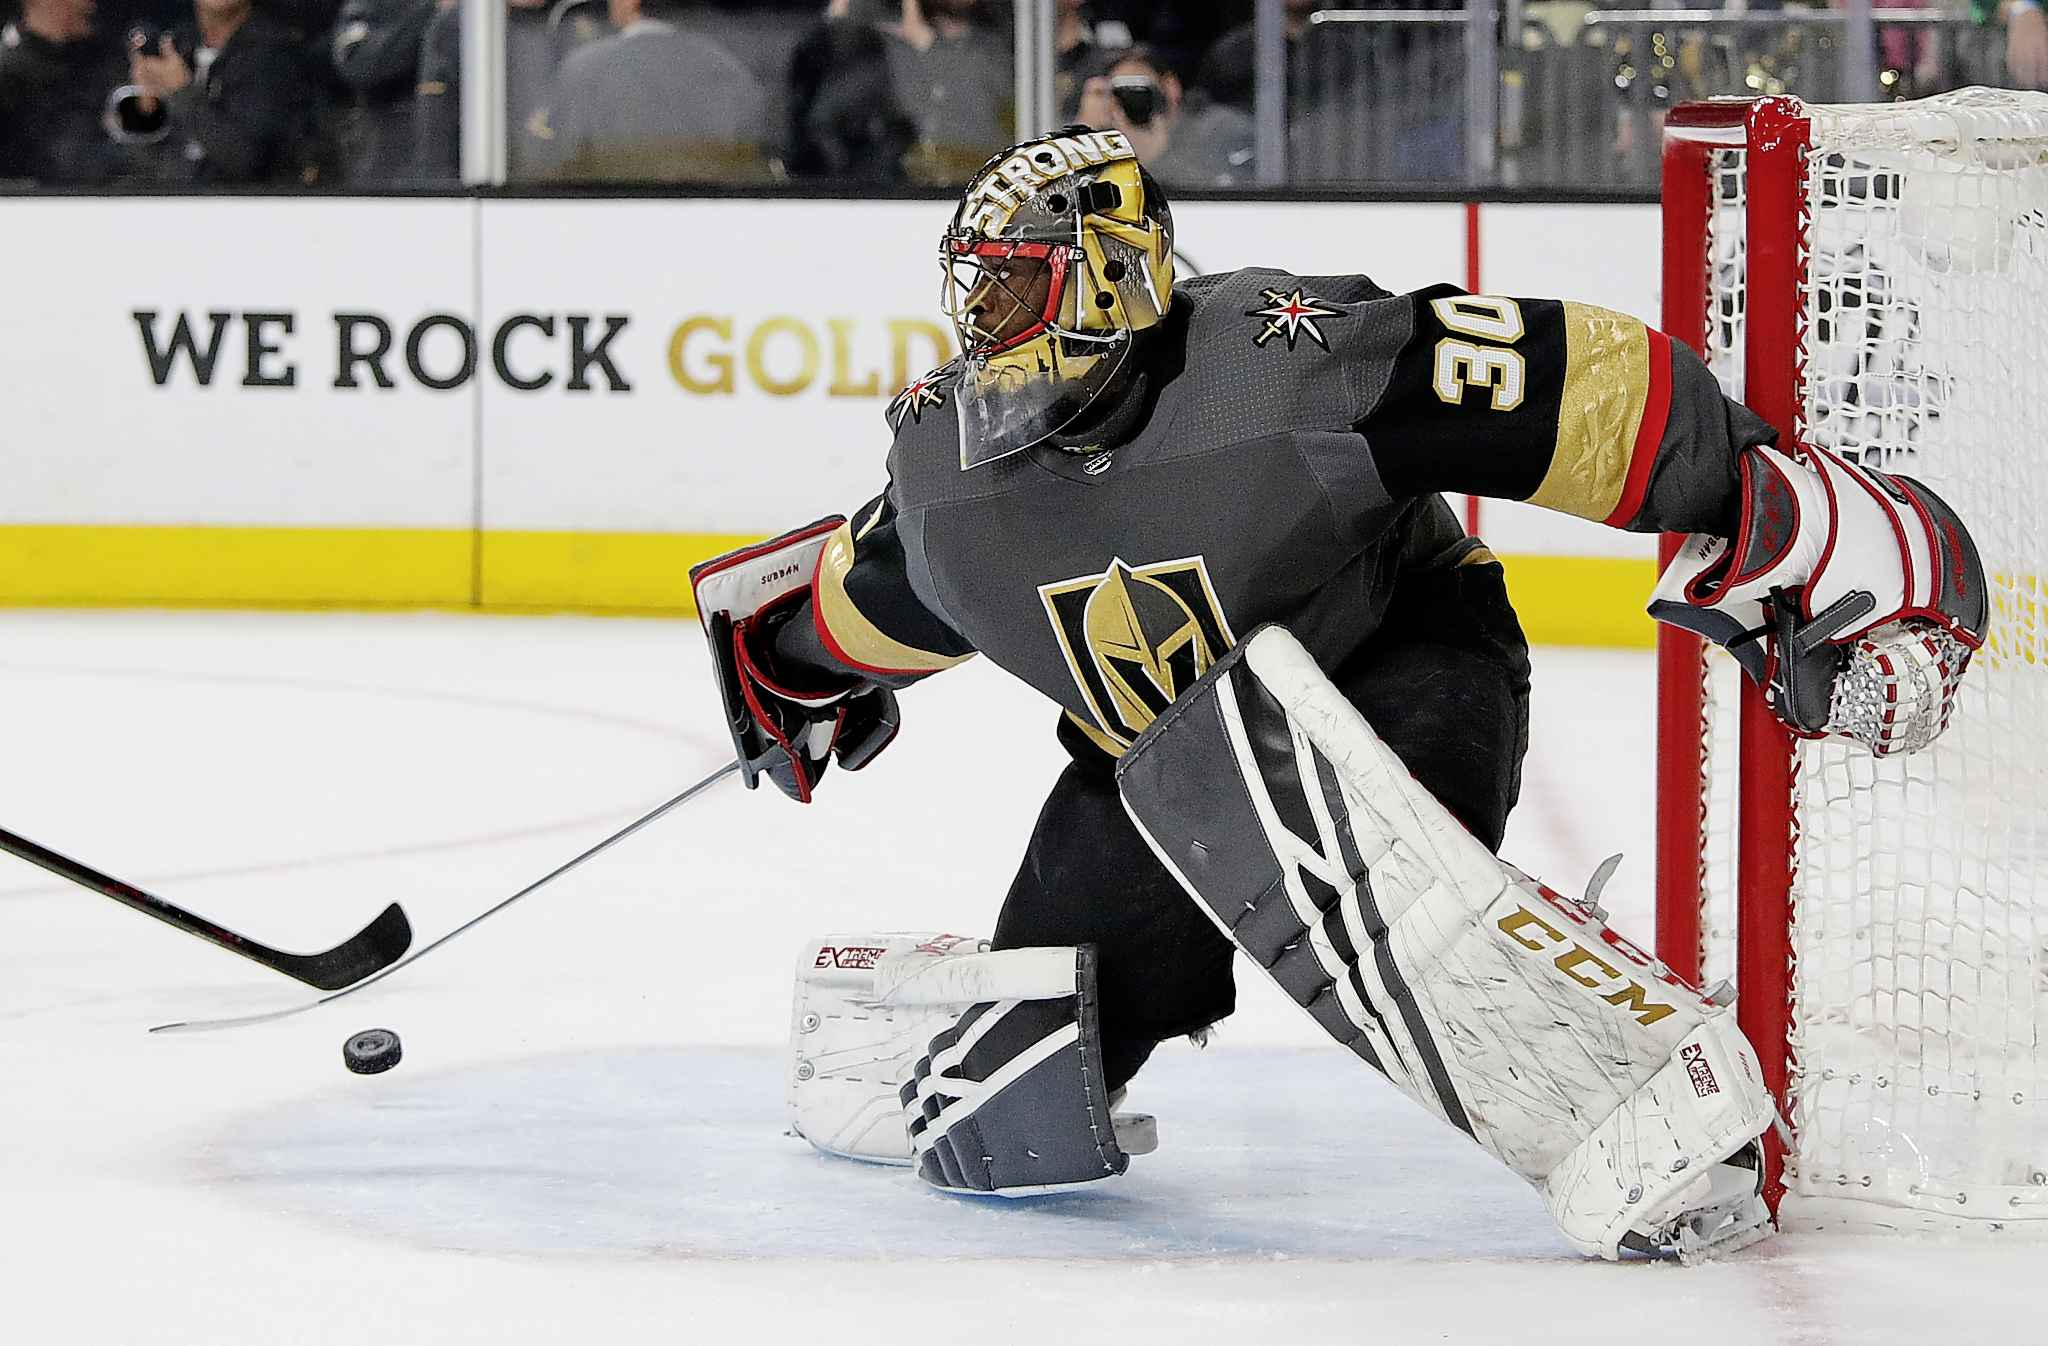 Vegas Golden Knights goaltender Malcolm Subban blocks shot by the Winnipeg Jets during the first period.